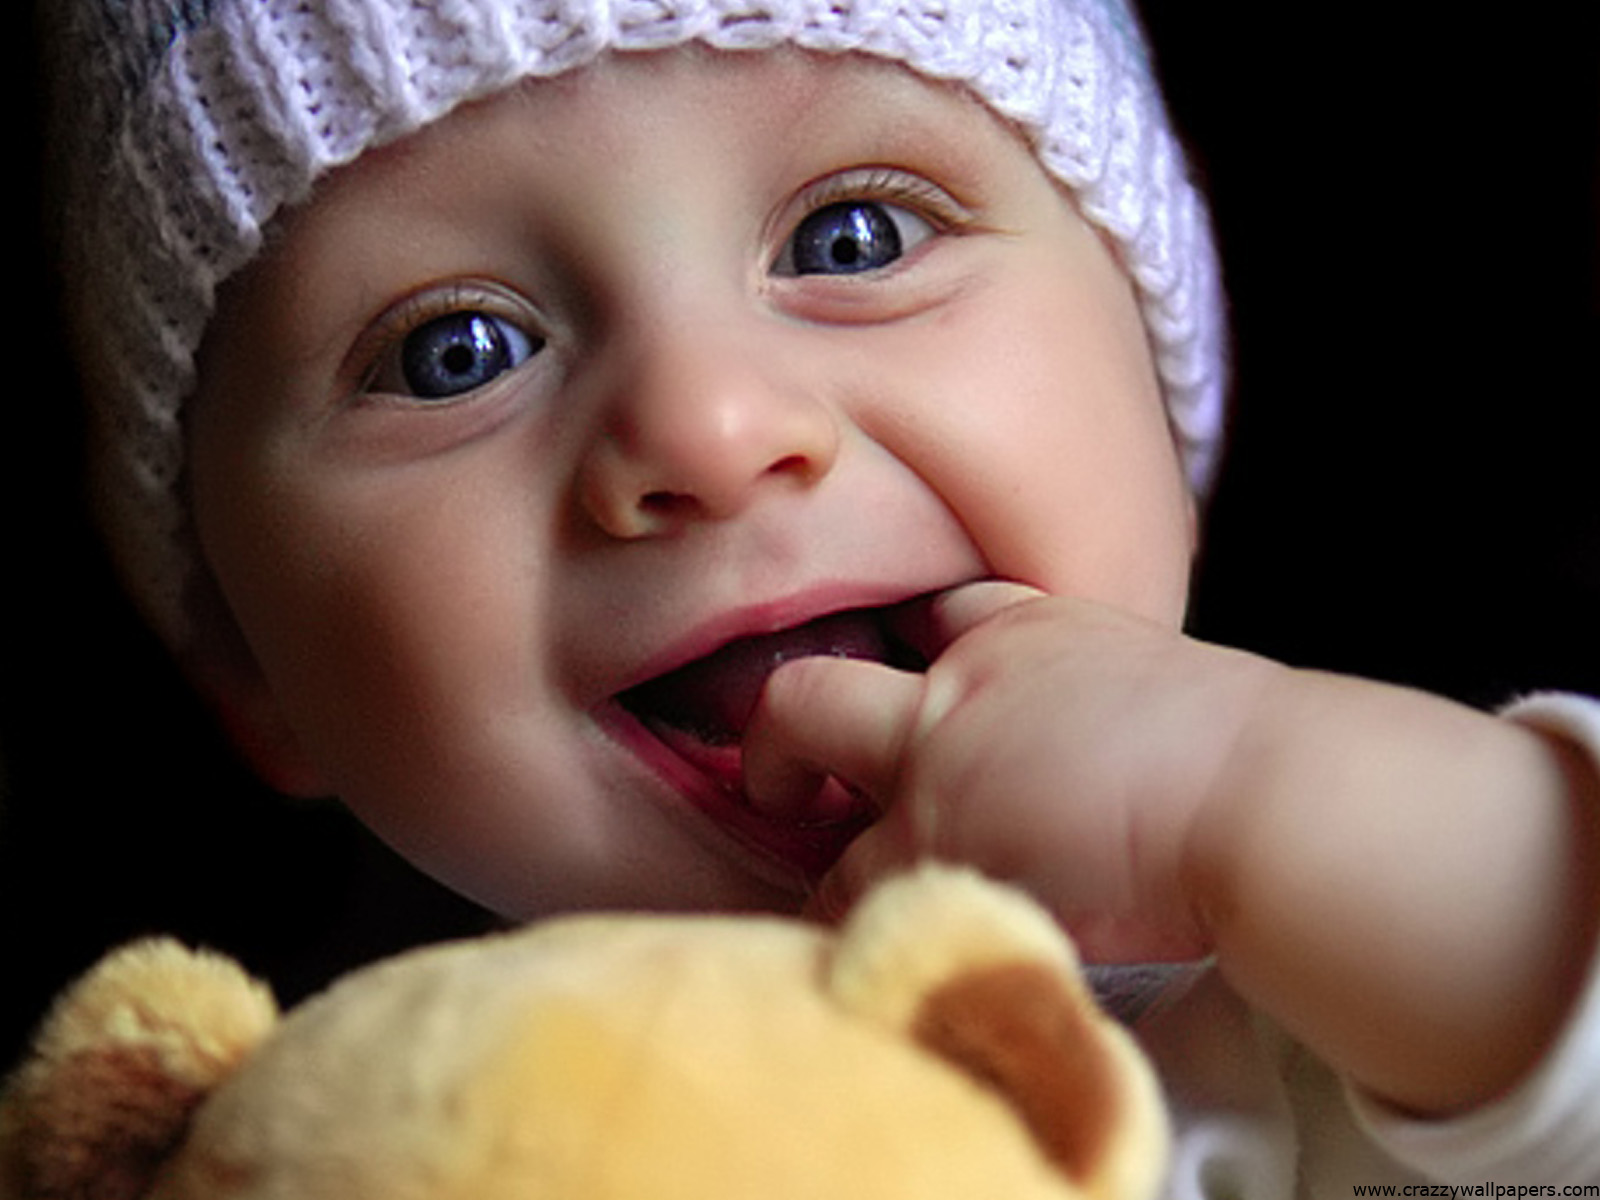 Cute And Lovely Baby Pictures Free Download: Includes A Lovely Baby Boy, Are